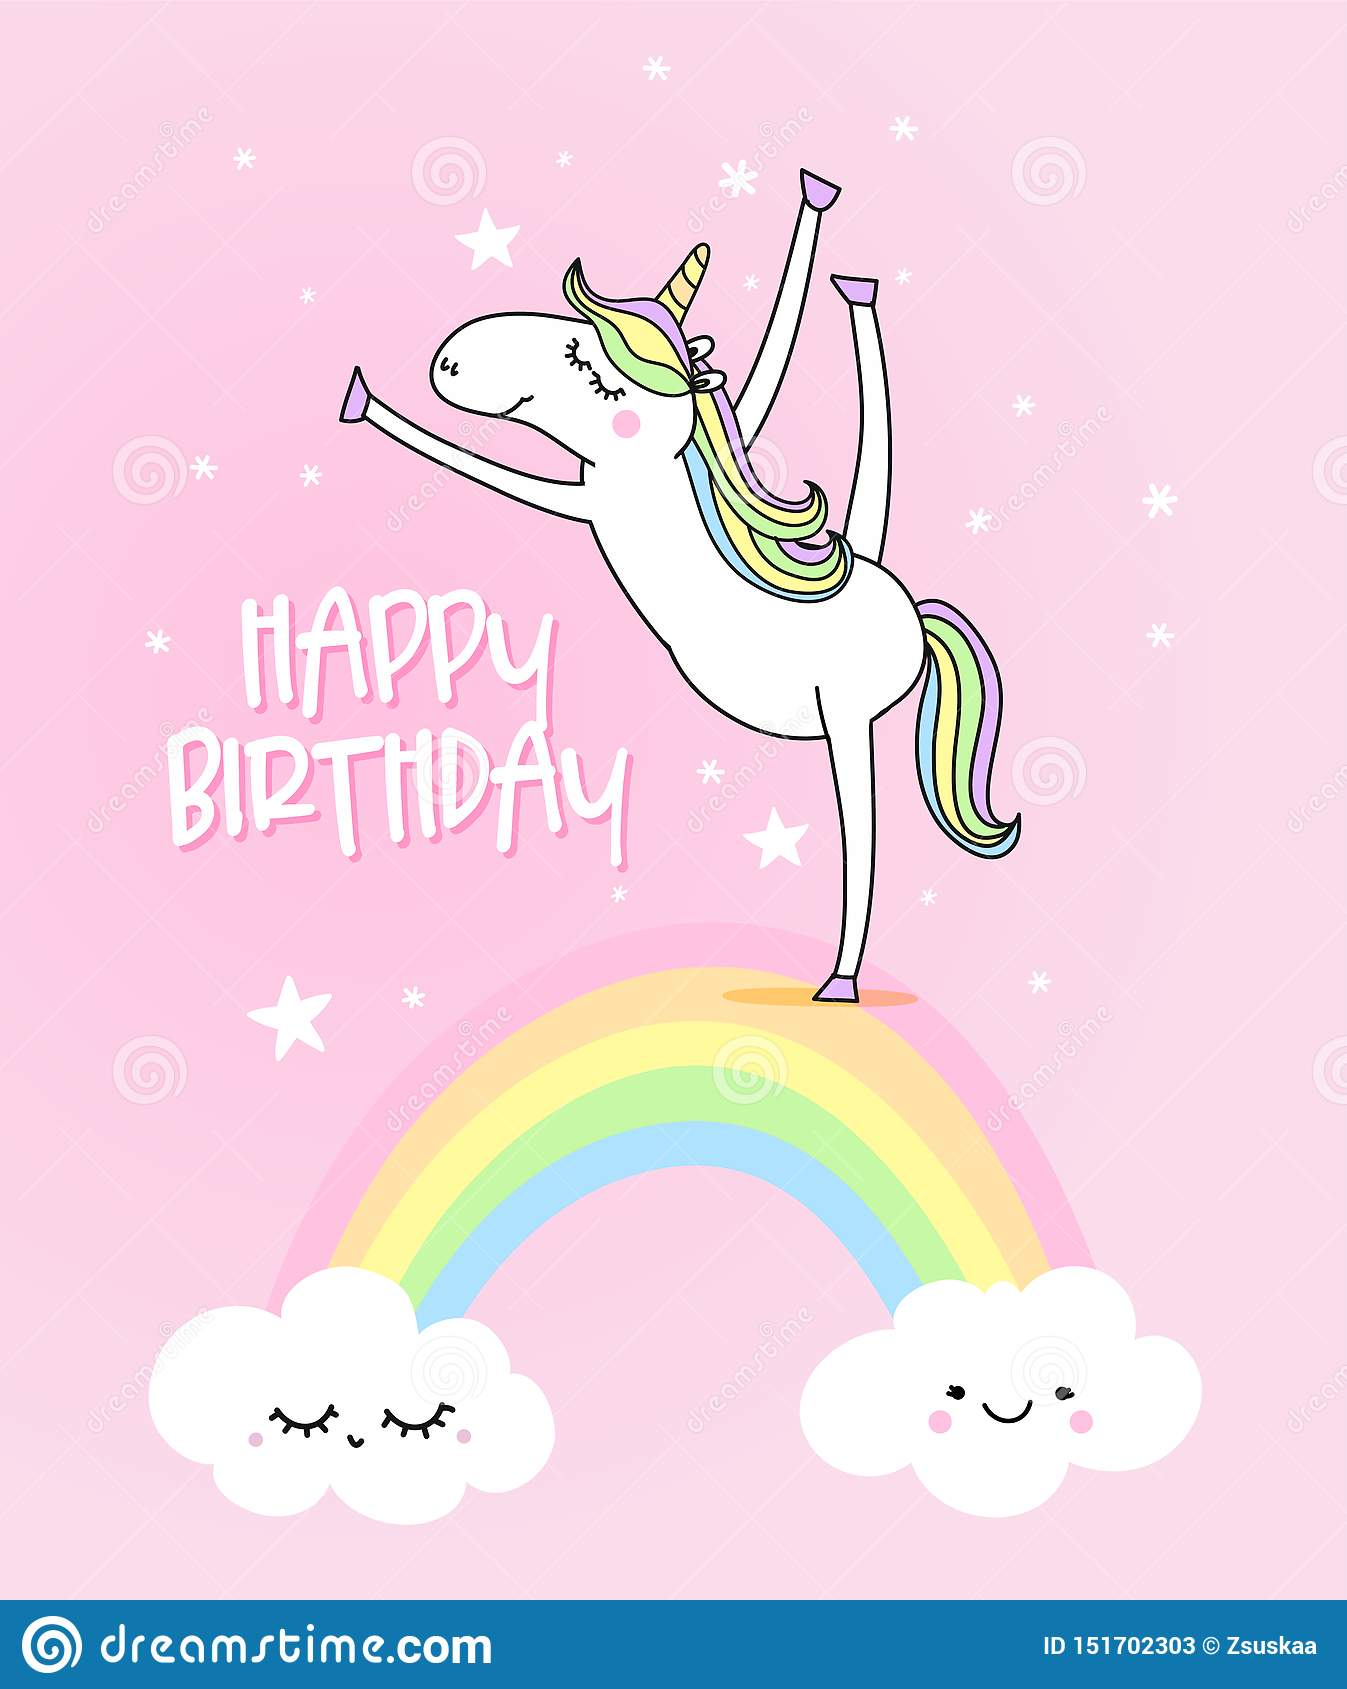 Happy Birthday Funny Vector Quotes And Unicorn Drawing Stock Vector Illustration Of Card Background 151702303